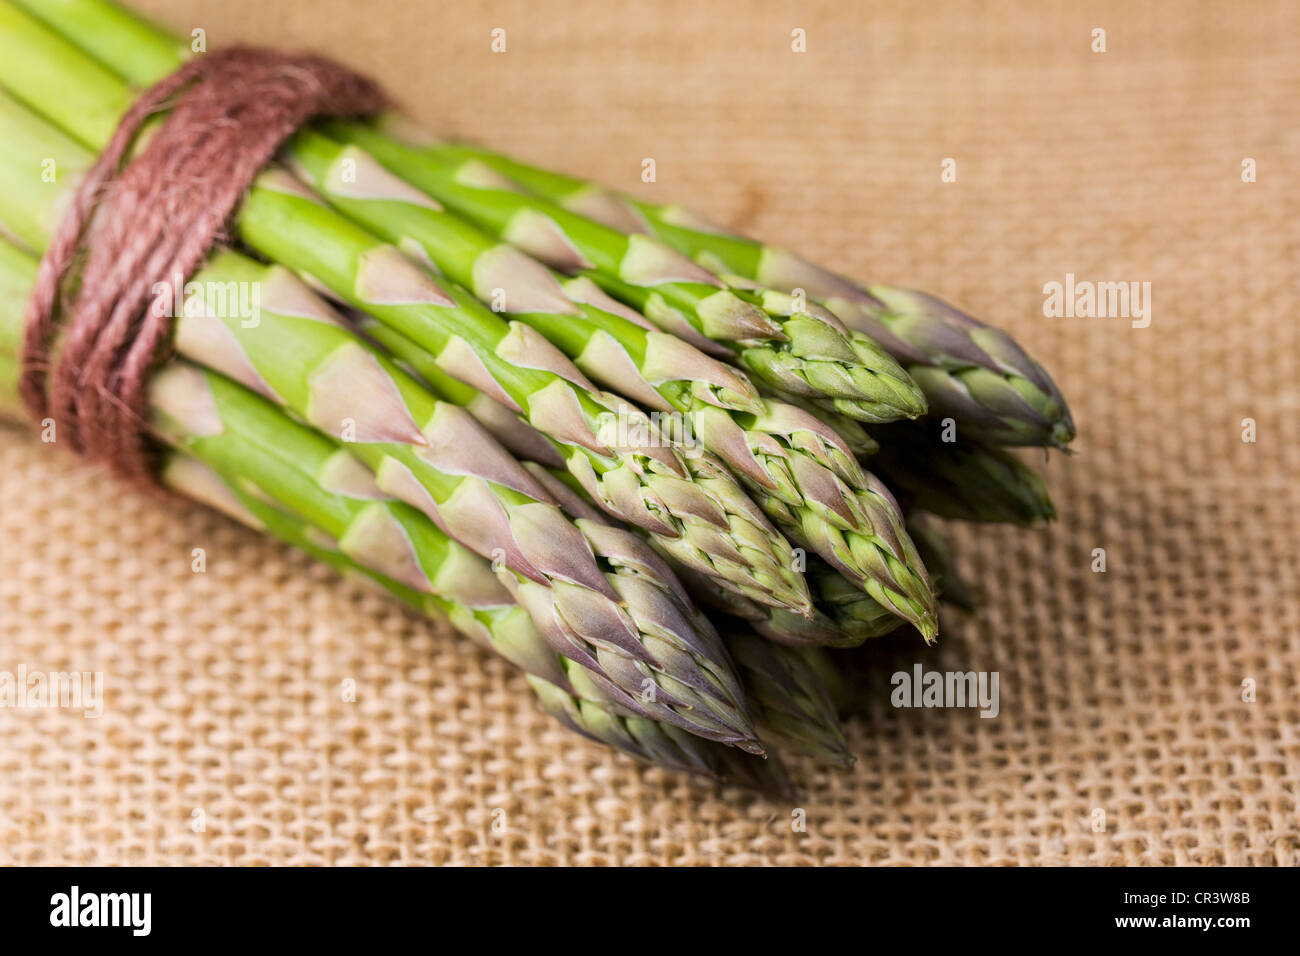 Asparagus officinalis. A bunch of Asparagus on a hessian background. - Stock Image